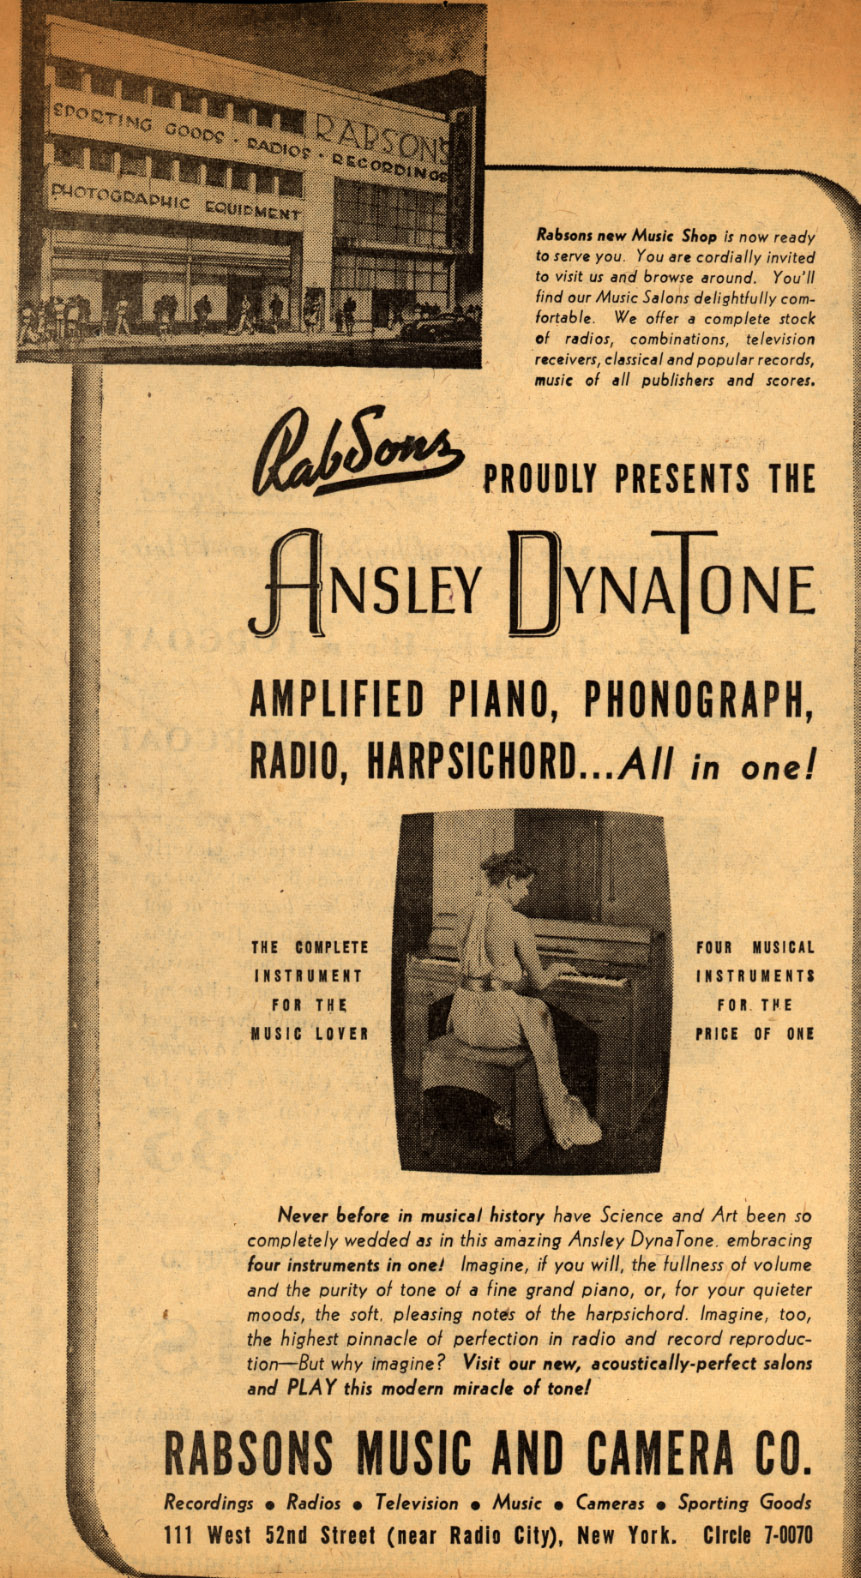 Rabsons_proudly_presents_the_Ansley_DynaTone